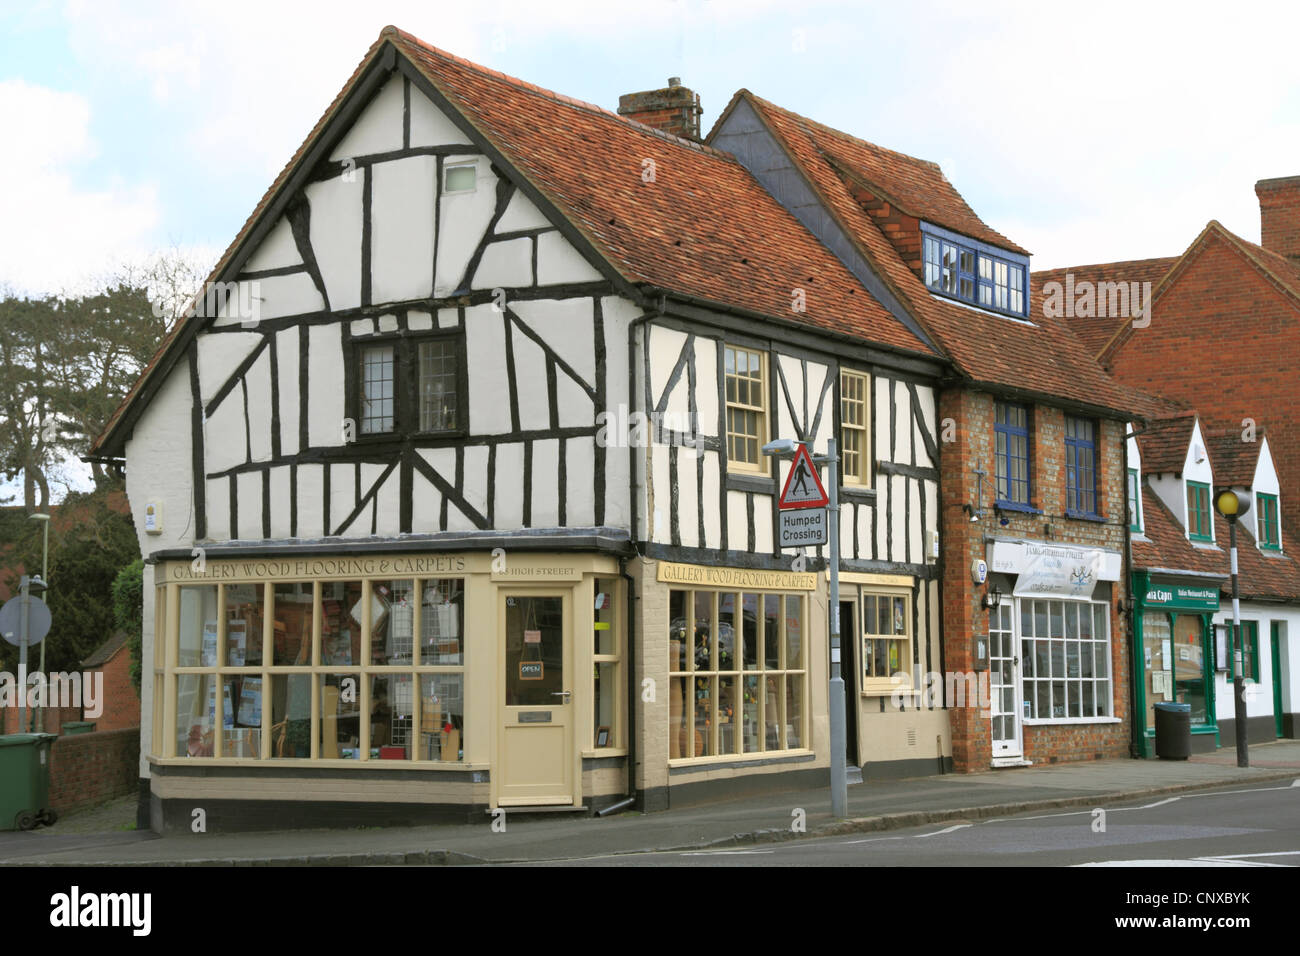 England Oxfordshire Thame High street - Stock Image